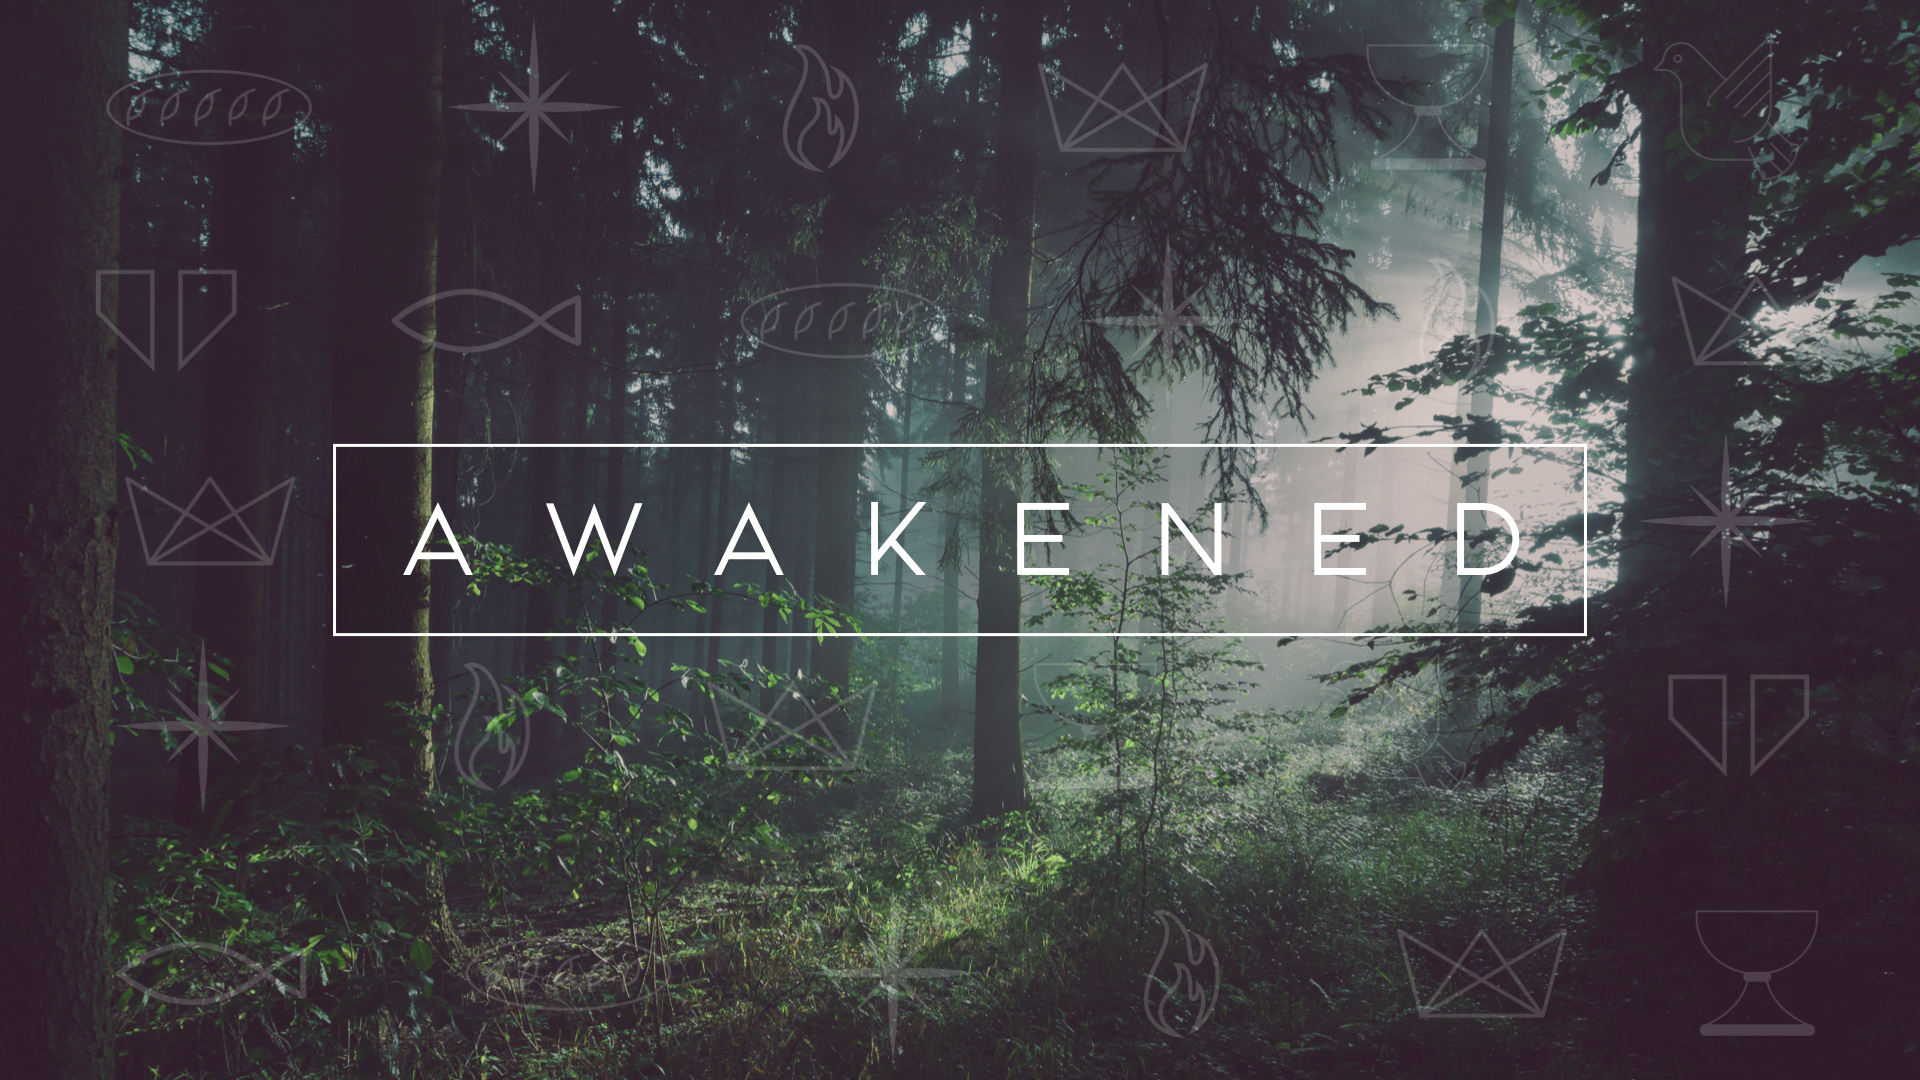 Become awakened to God in your every day life.